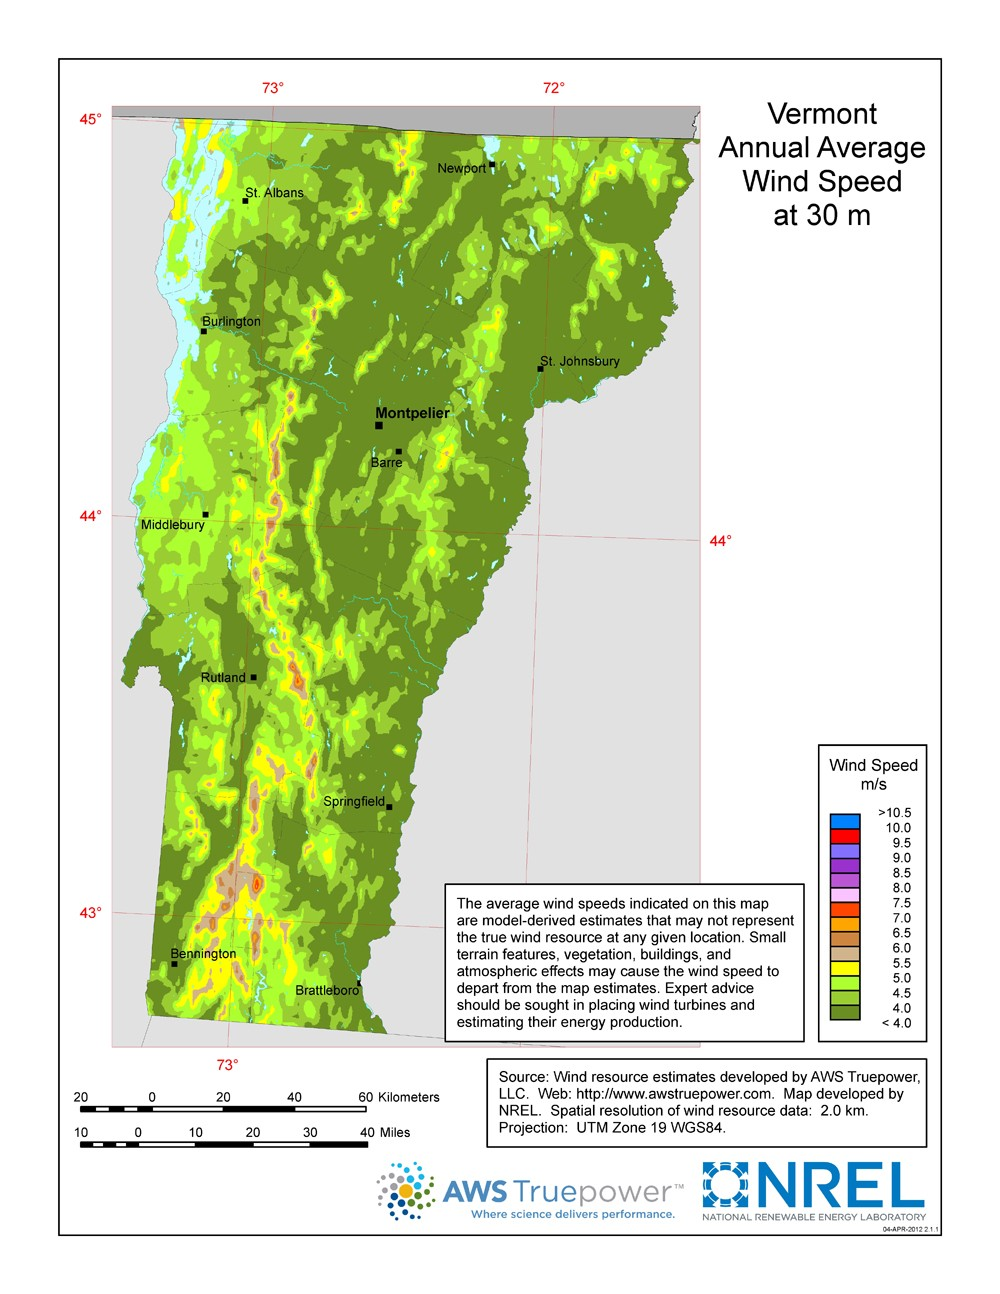 A map of Vermont showing wind speeds at a 30-m height.